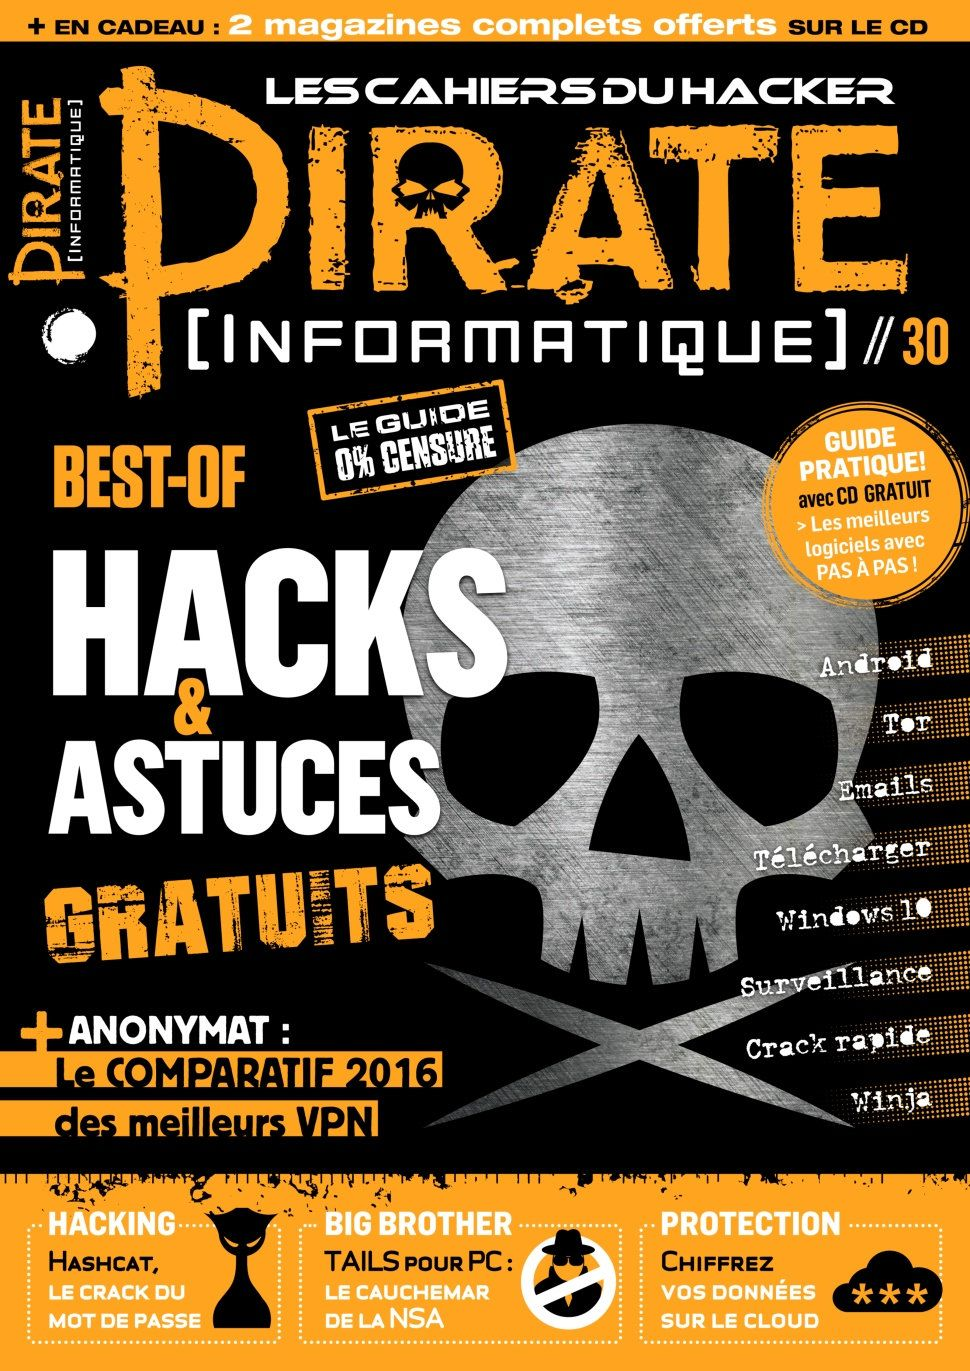 Pirate Informatique 30 - Aout/Octobre 2016